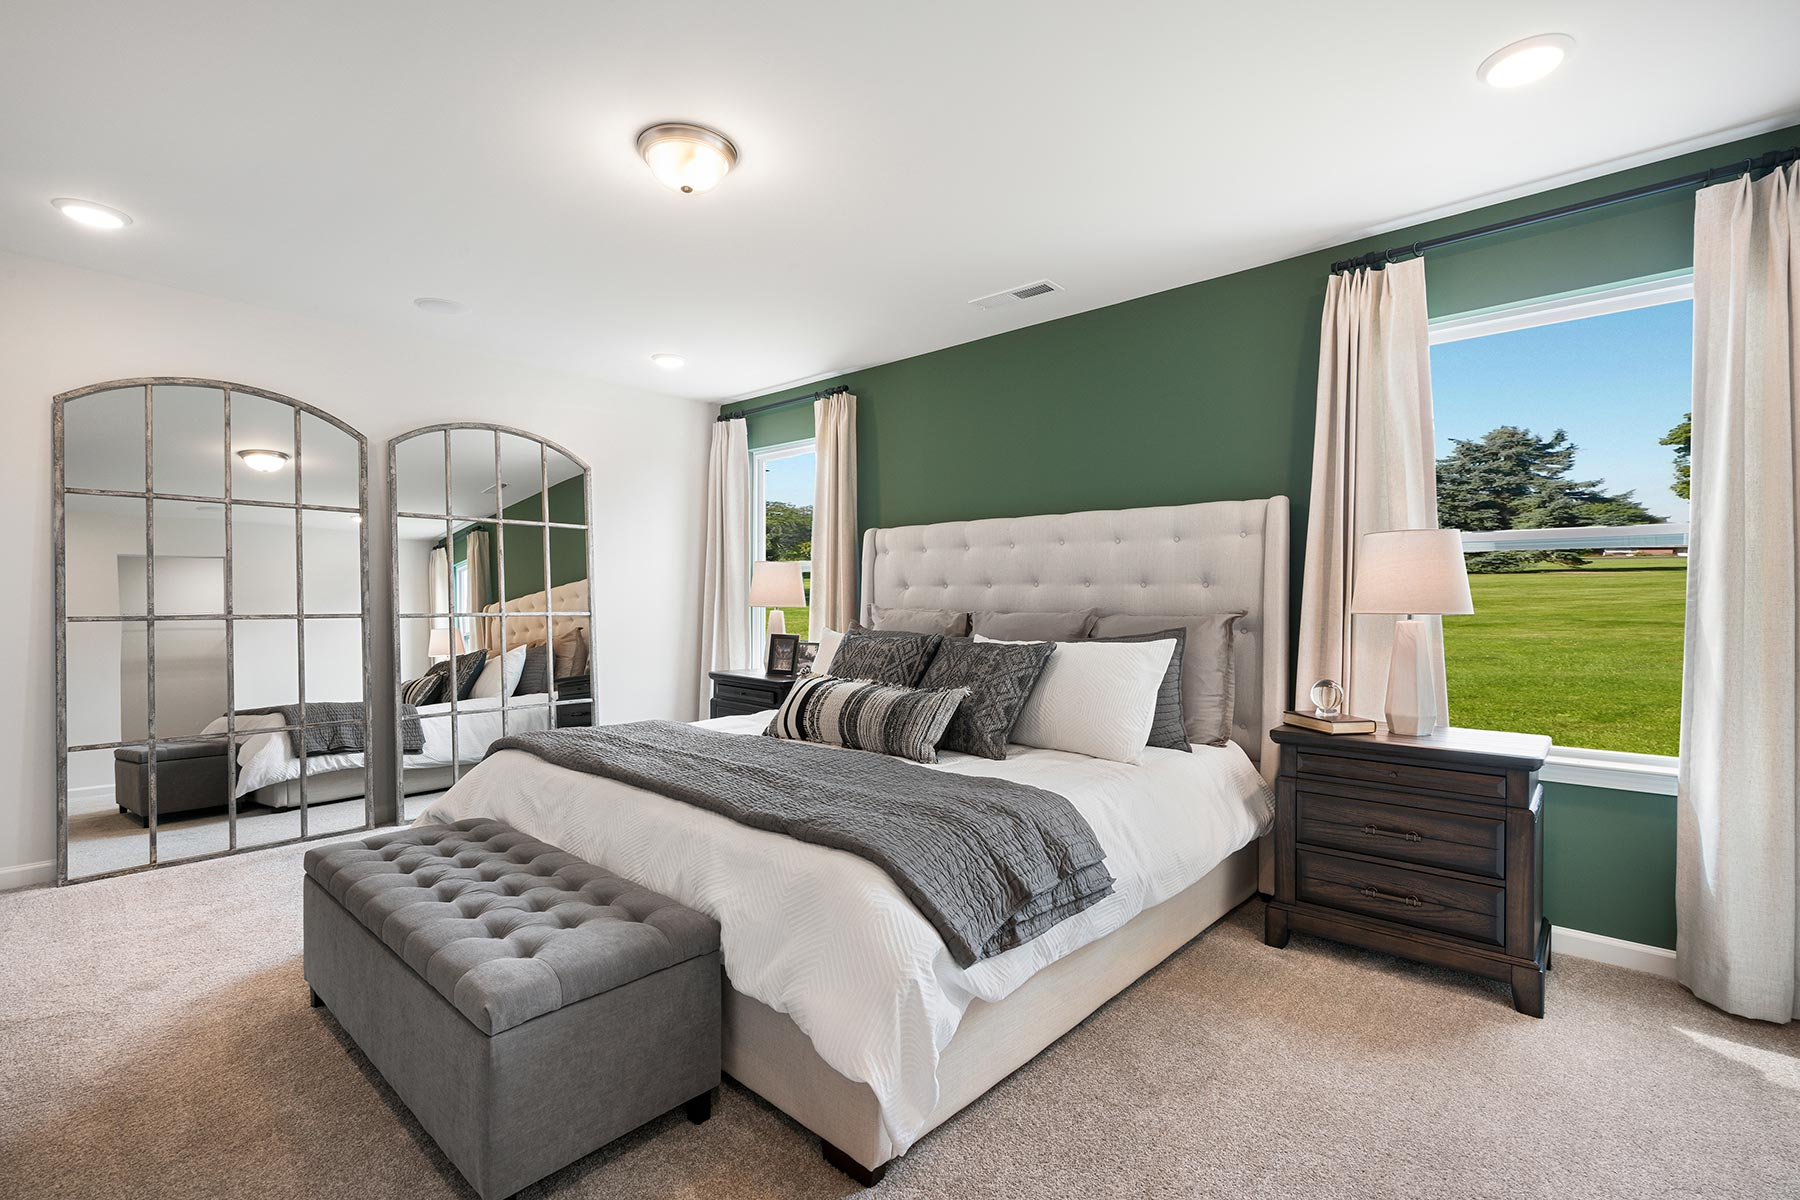 Gaines Plan Bedroom at Wendell Falls in Wendell North Carolina by Mattamy Homes